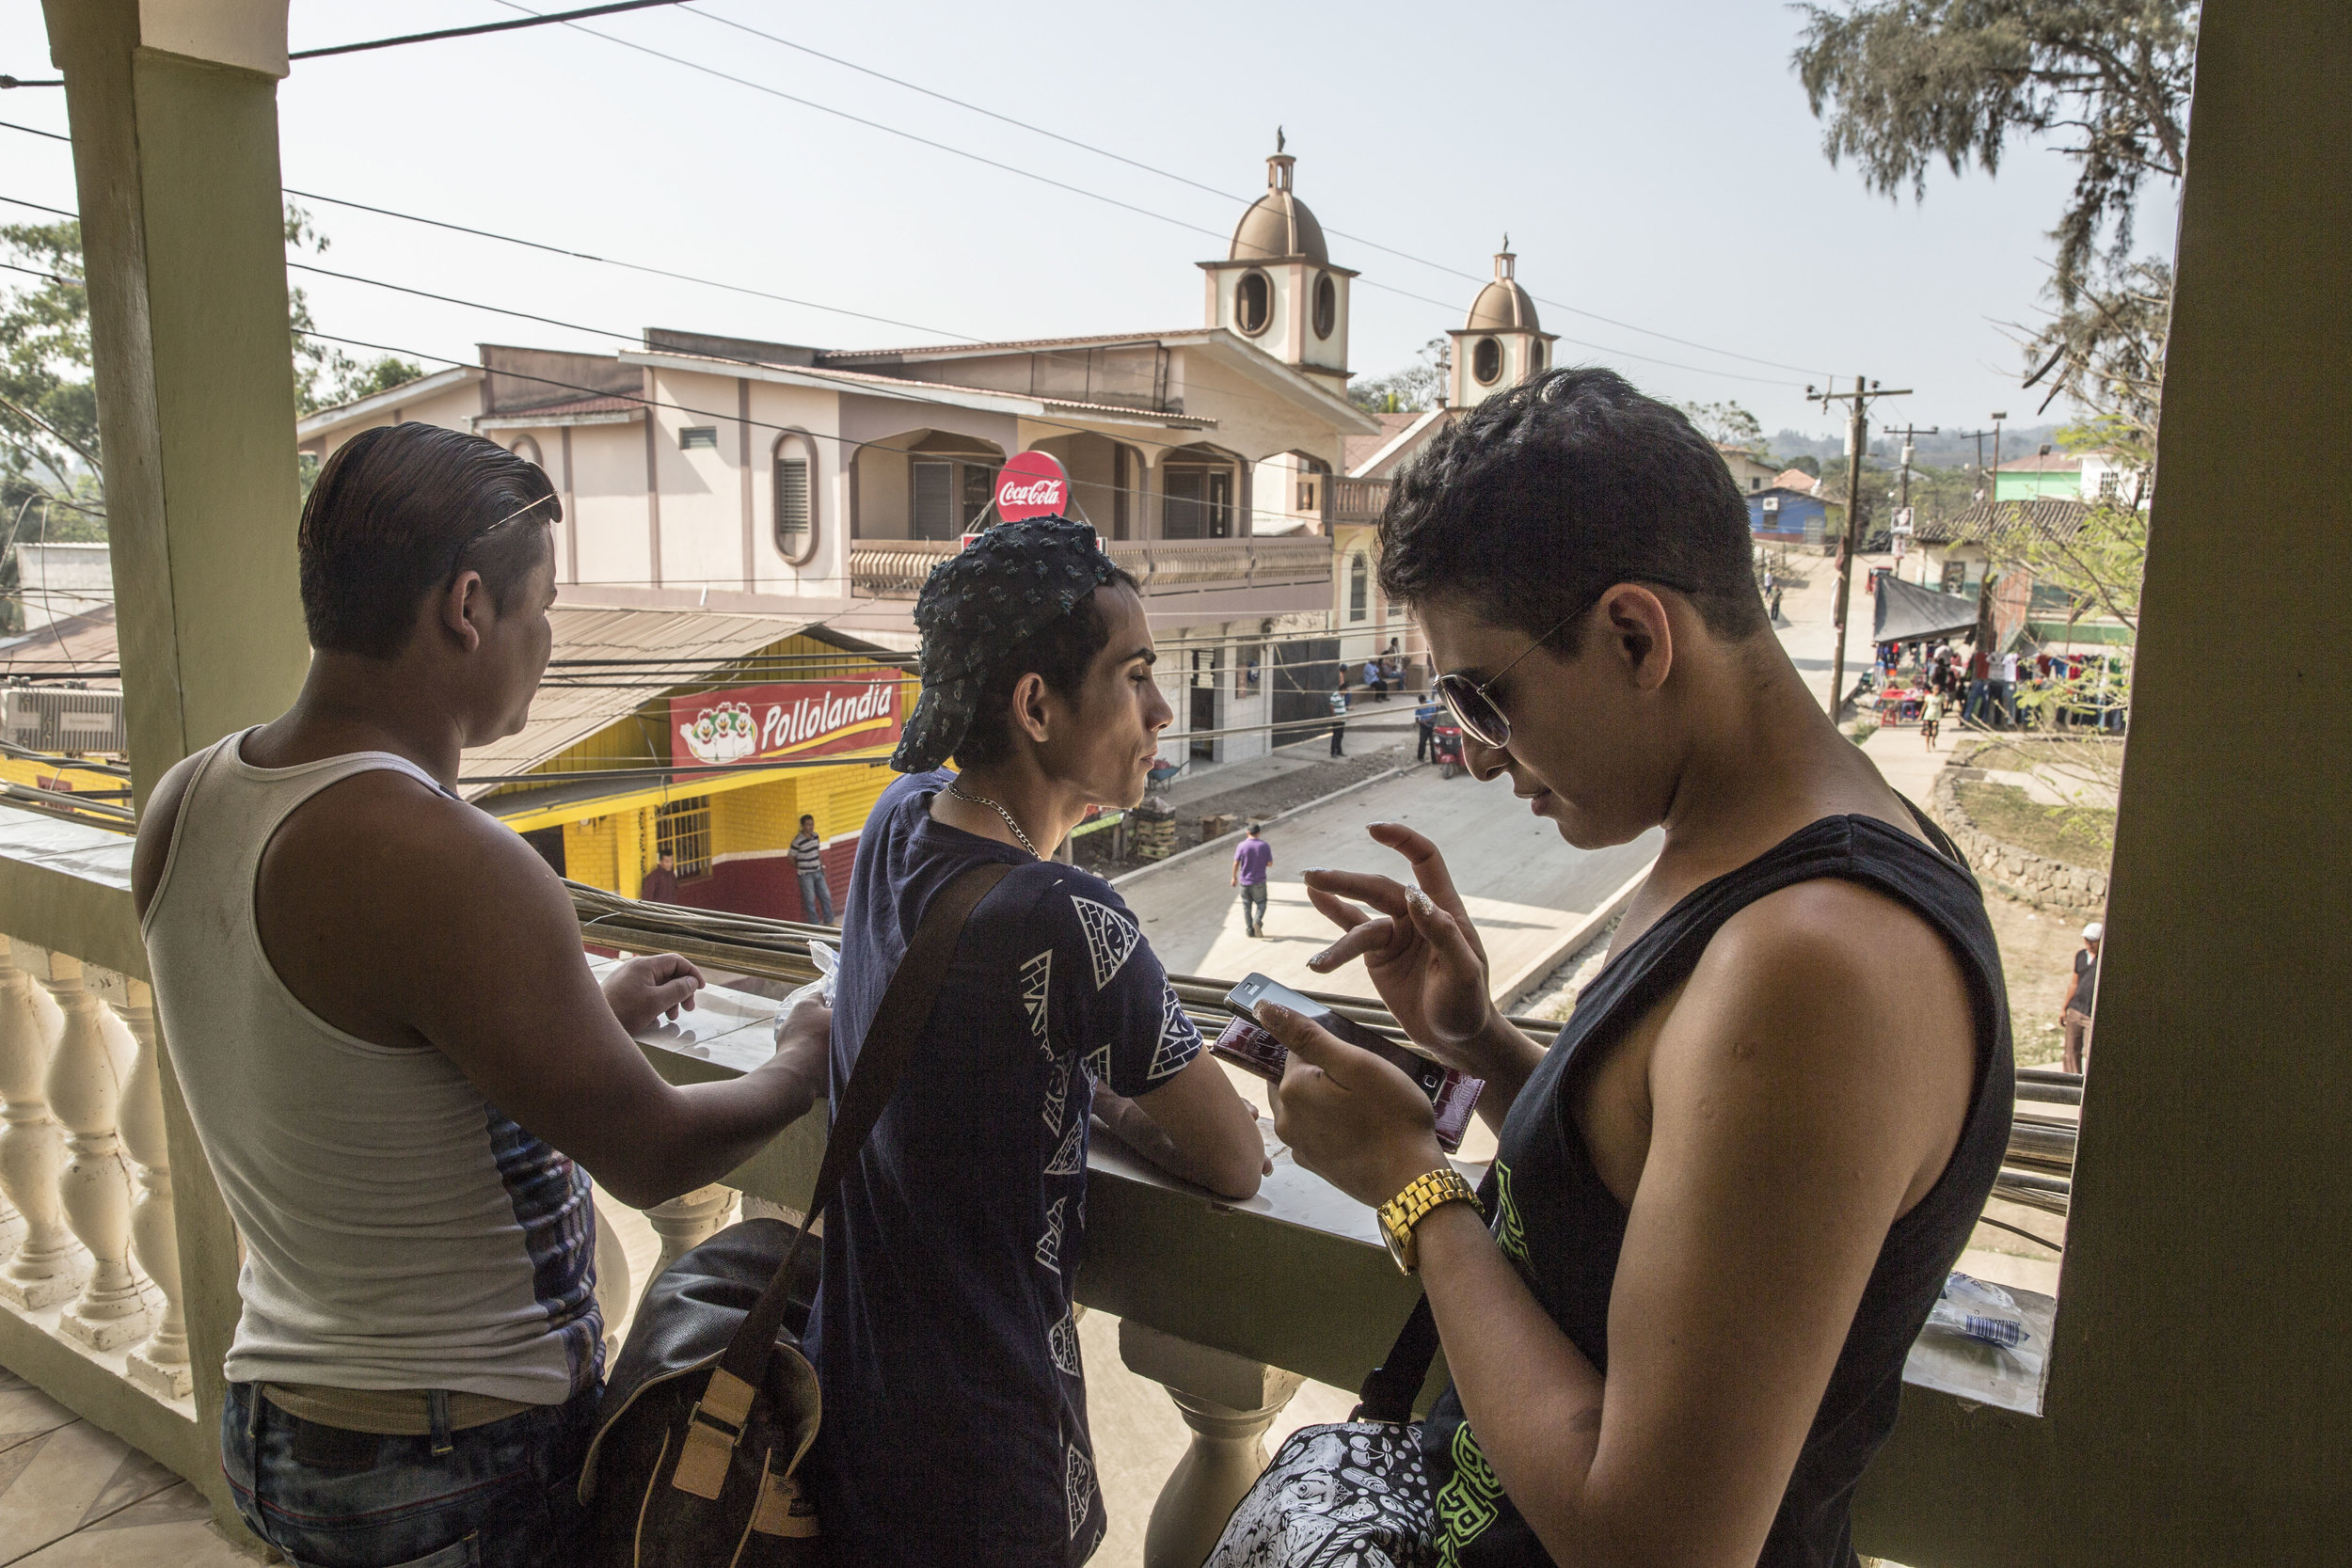 Darwin's friends after a night out in the small town of San Antonio de Cortez, Honduras.